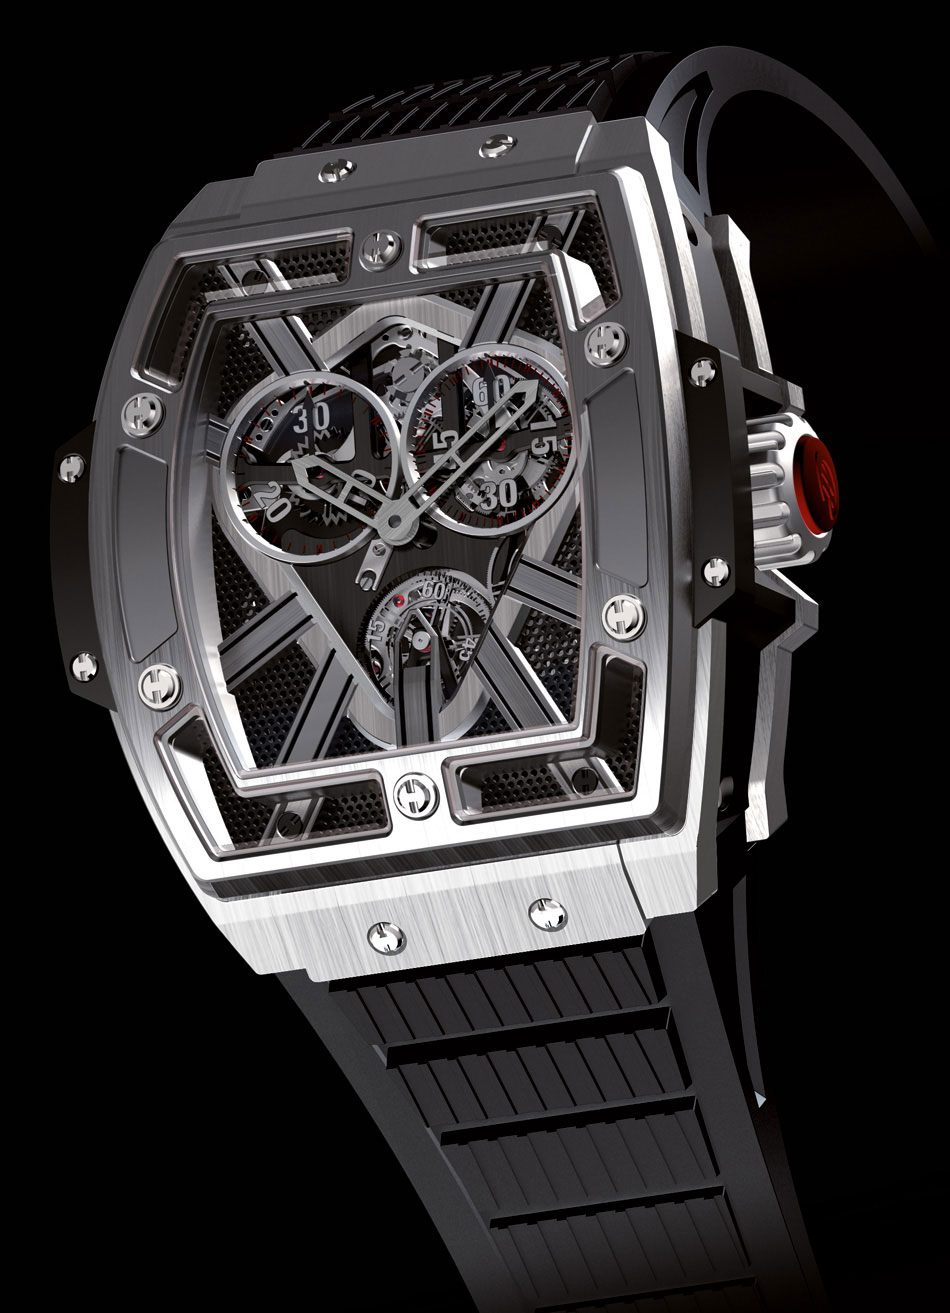 Hublot-Masterpiece-MP-01-1